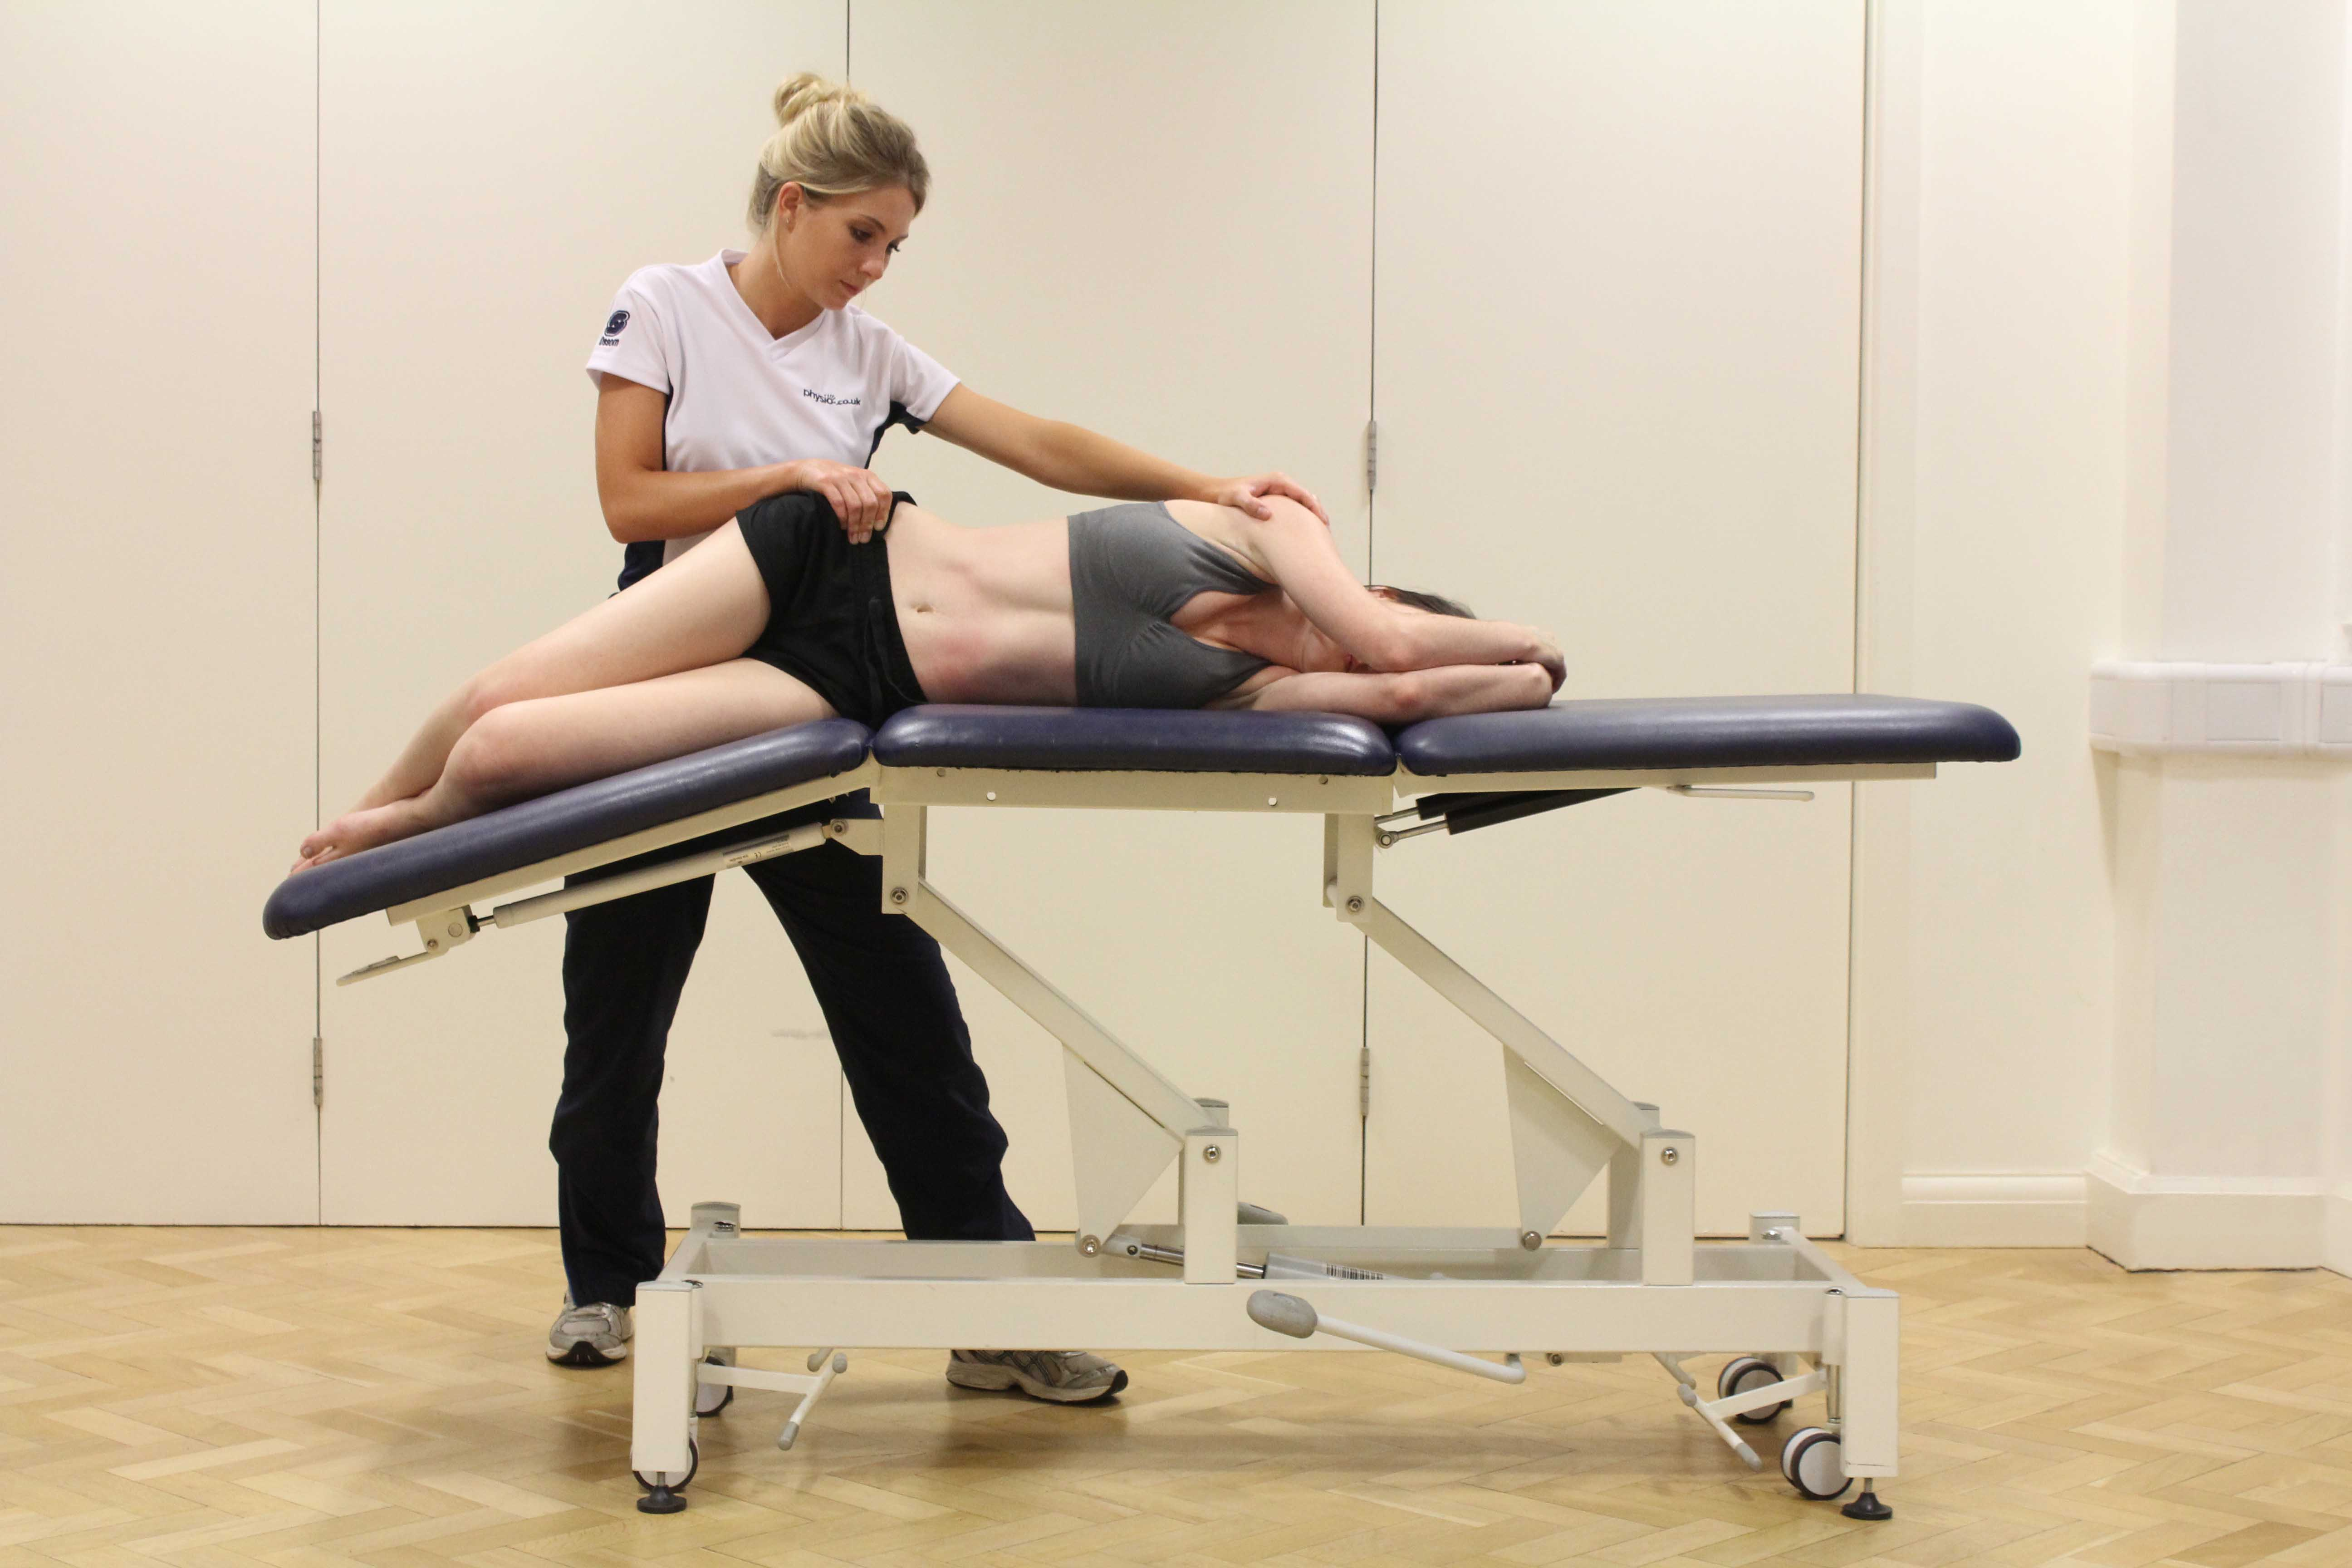 Specialist Therepist applying traction to relieve pain and stiffness by stretch connective tissues